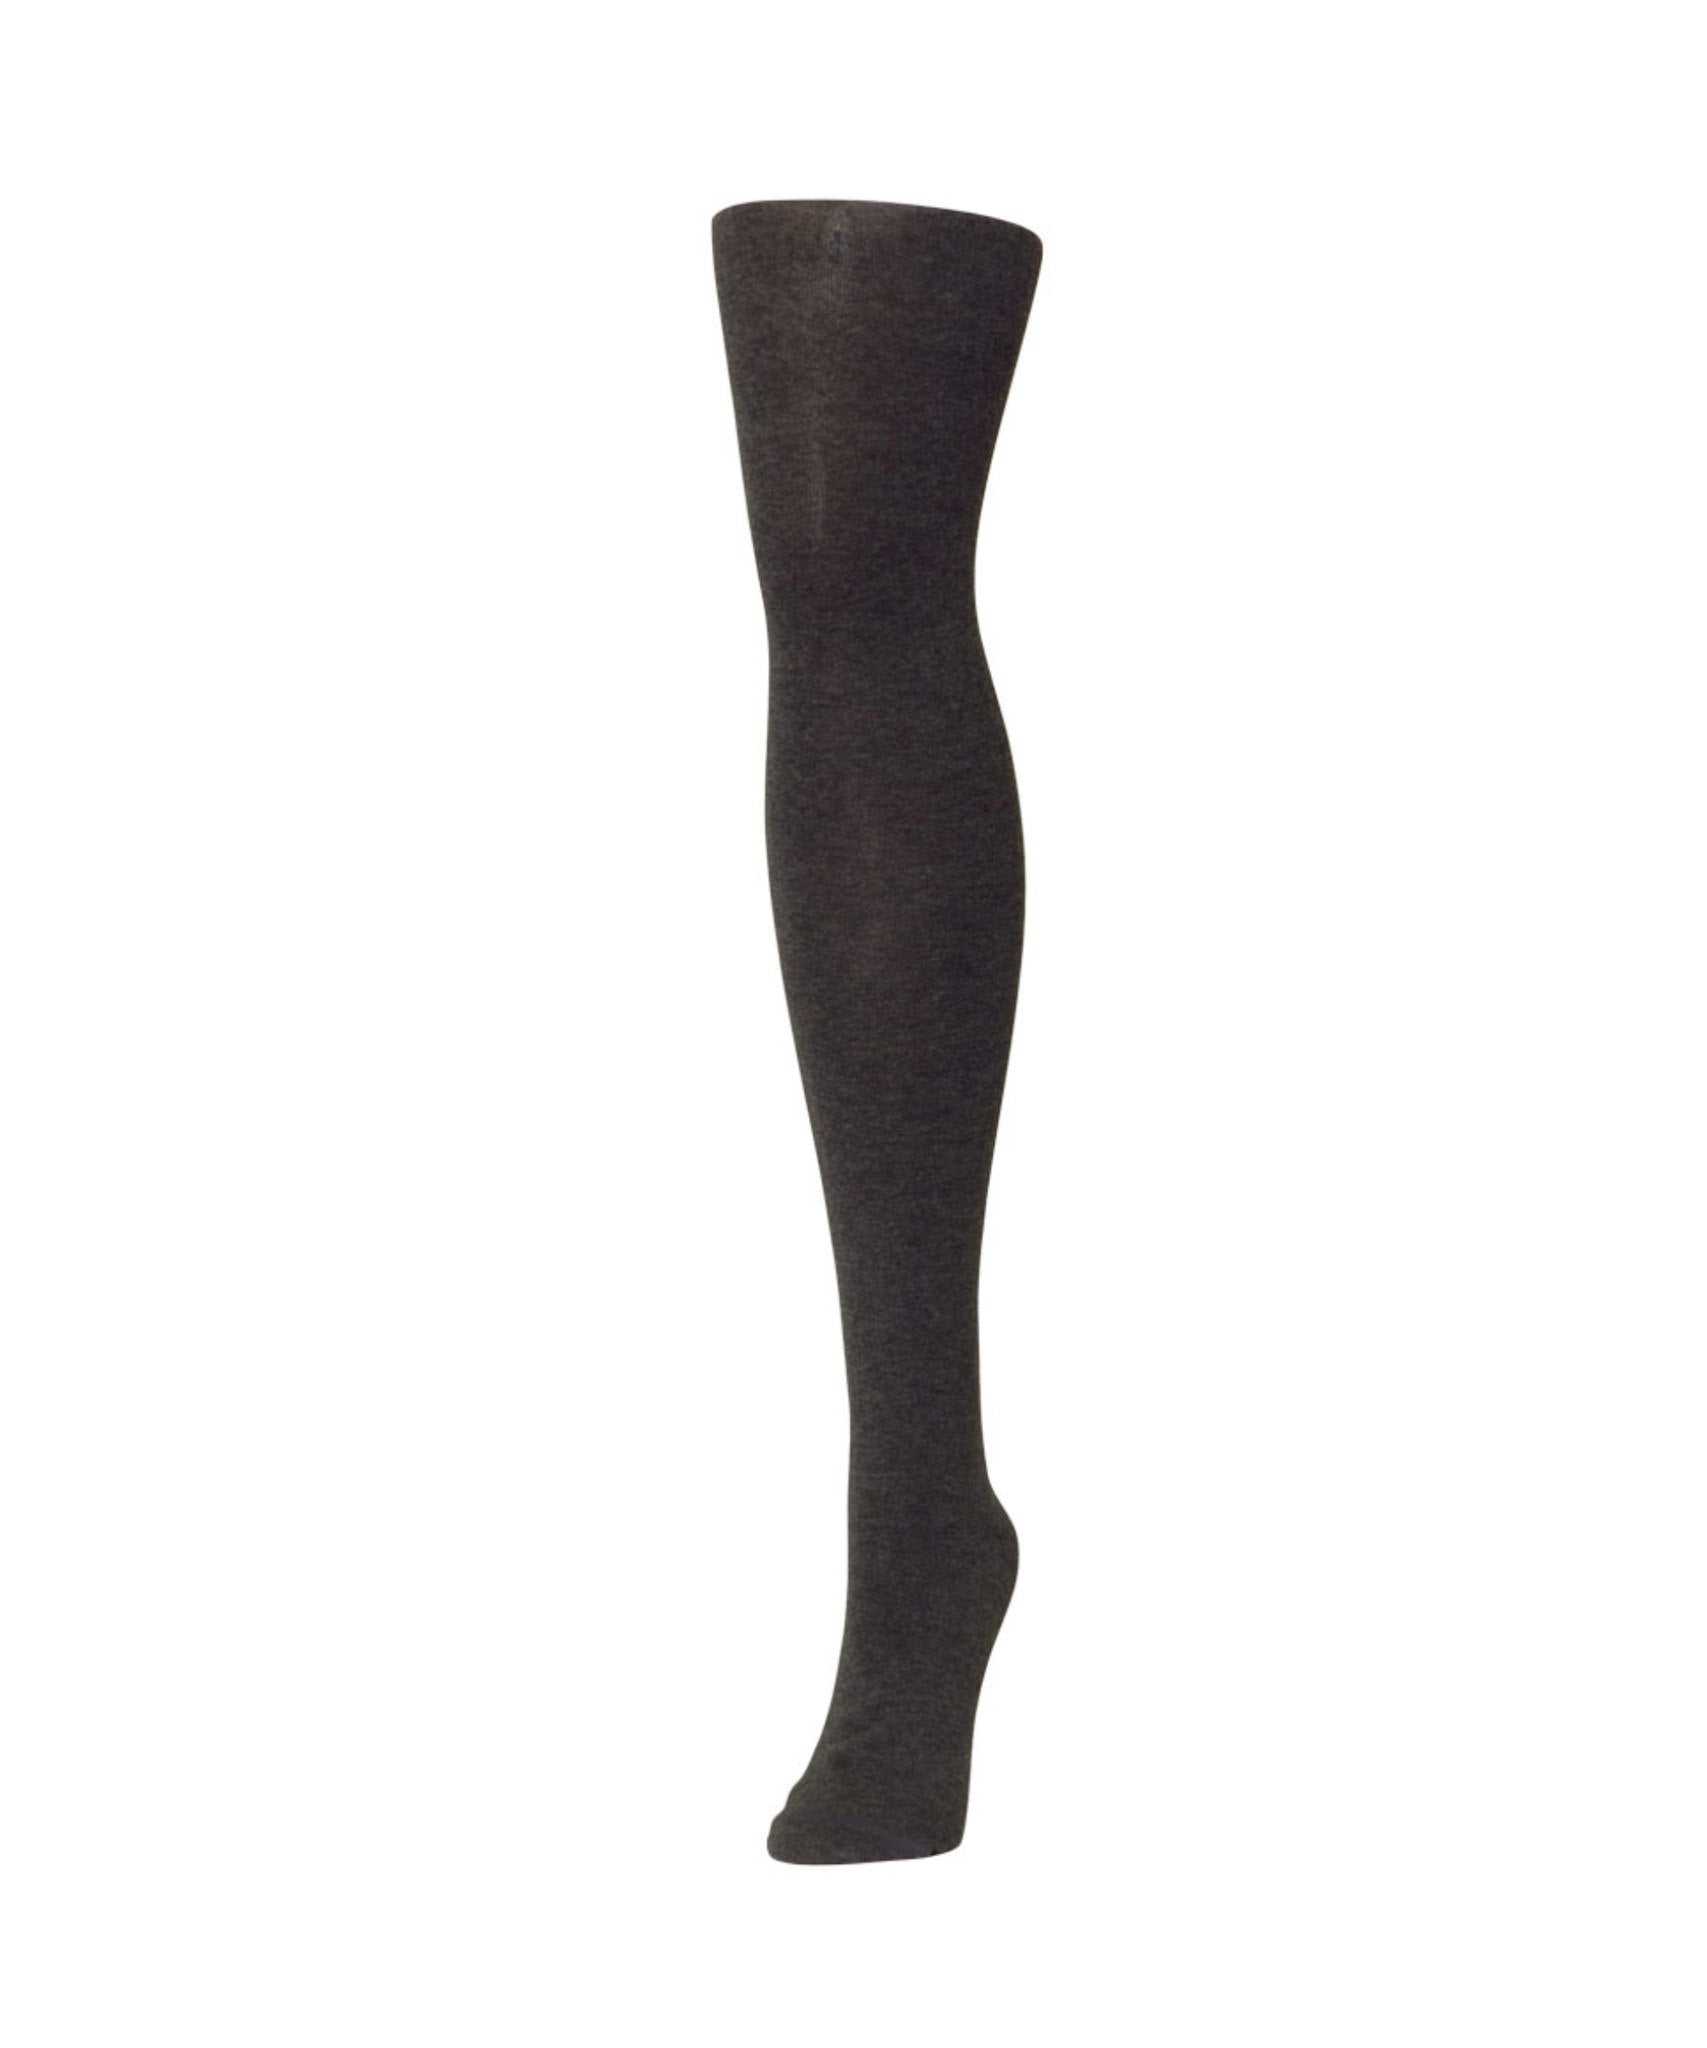 Natural Bamboo Tights - MeMoi - 6